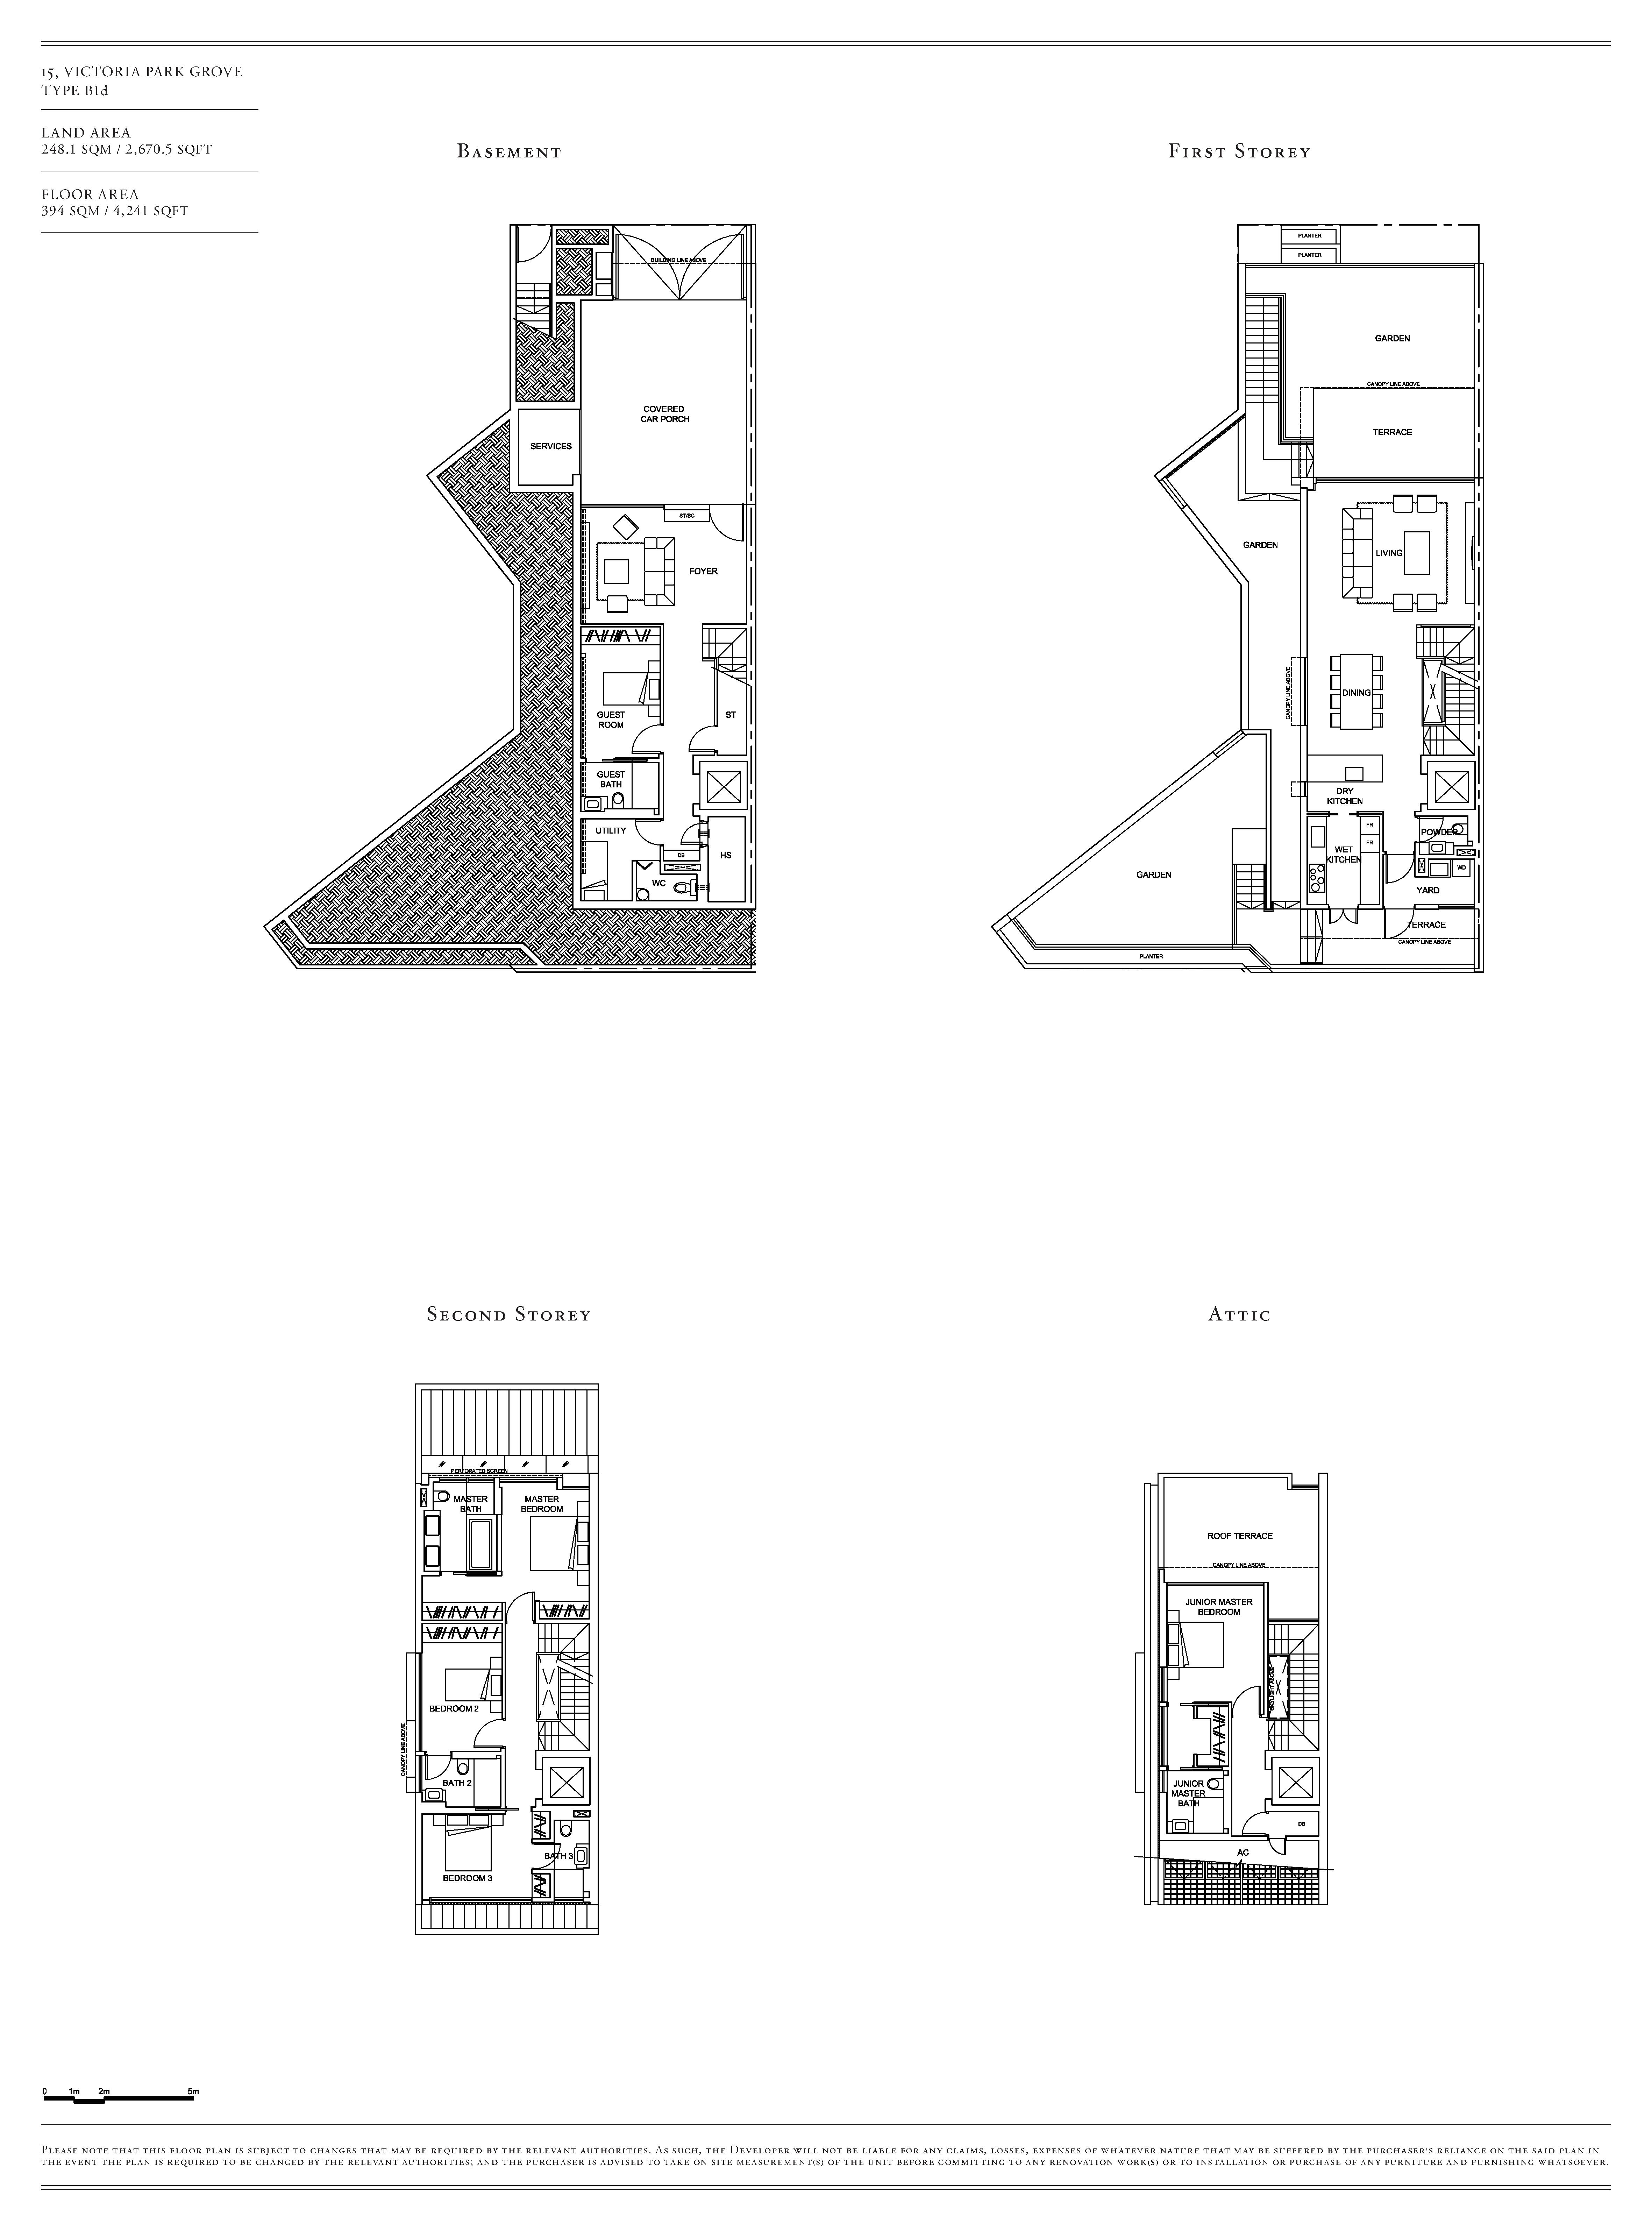 Victoria Park Villas House 15 Type B1d Floor Plans